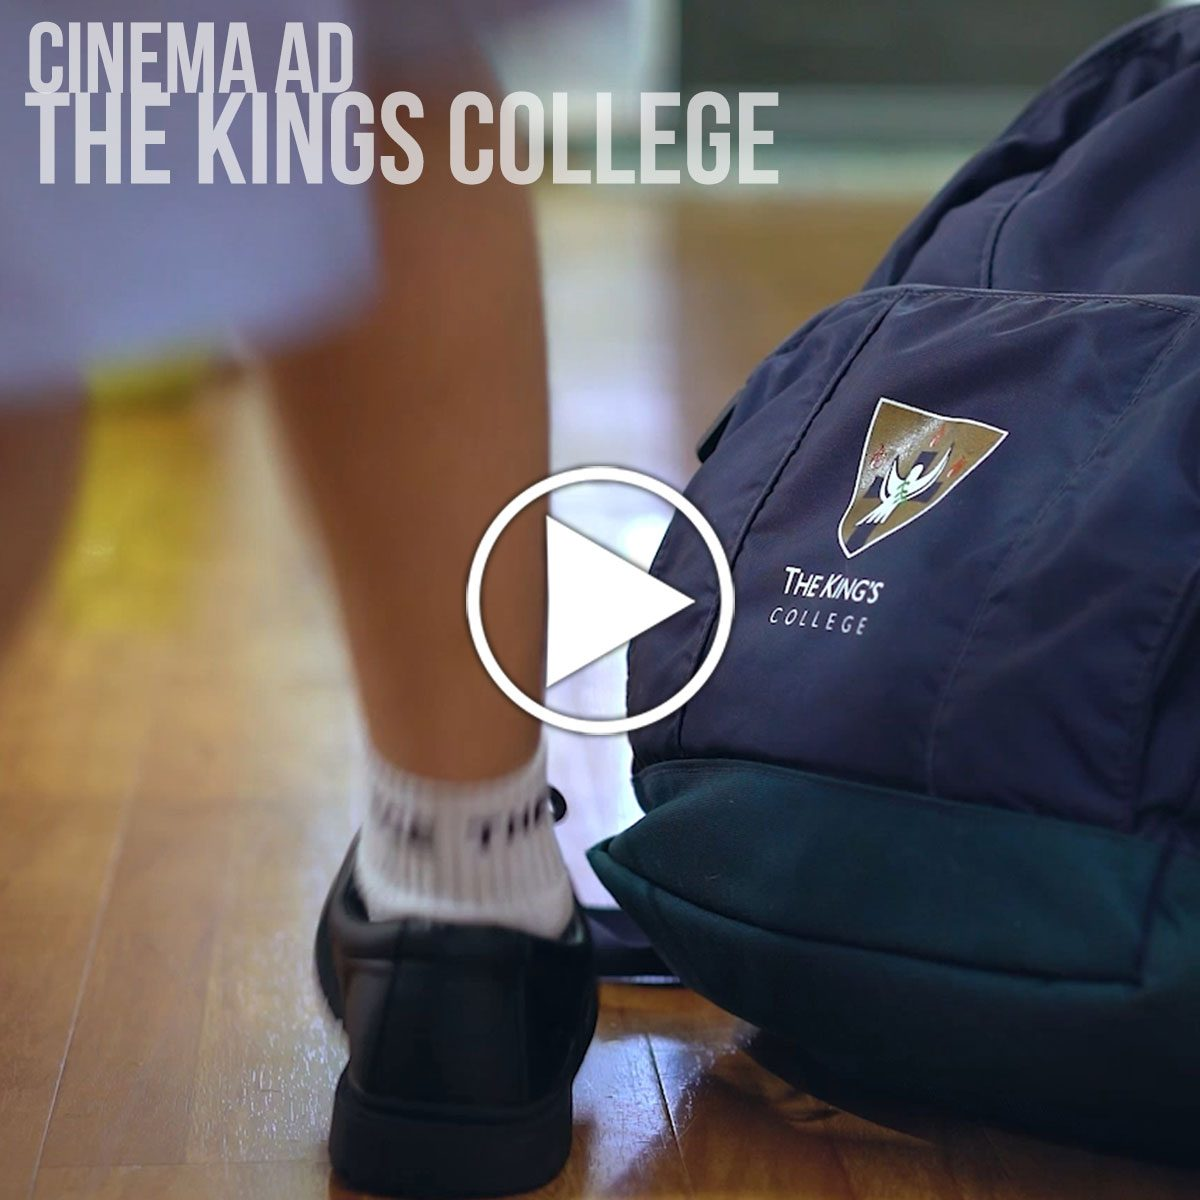 Cinema Ad for School Video Production